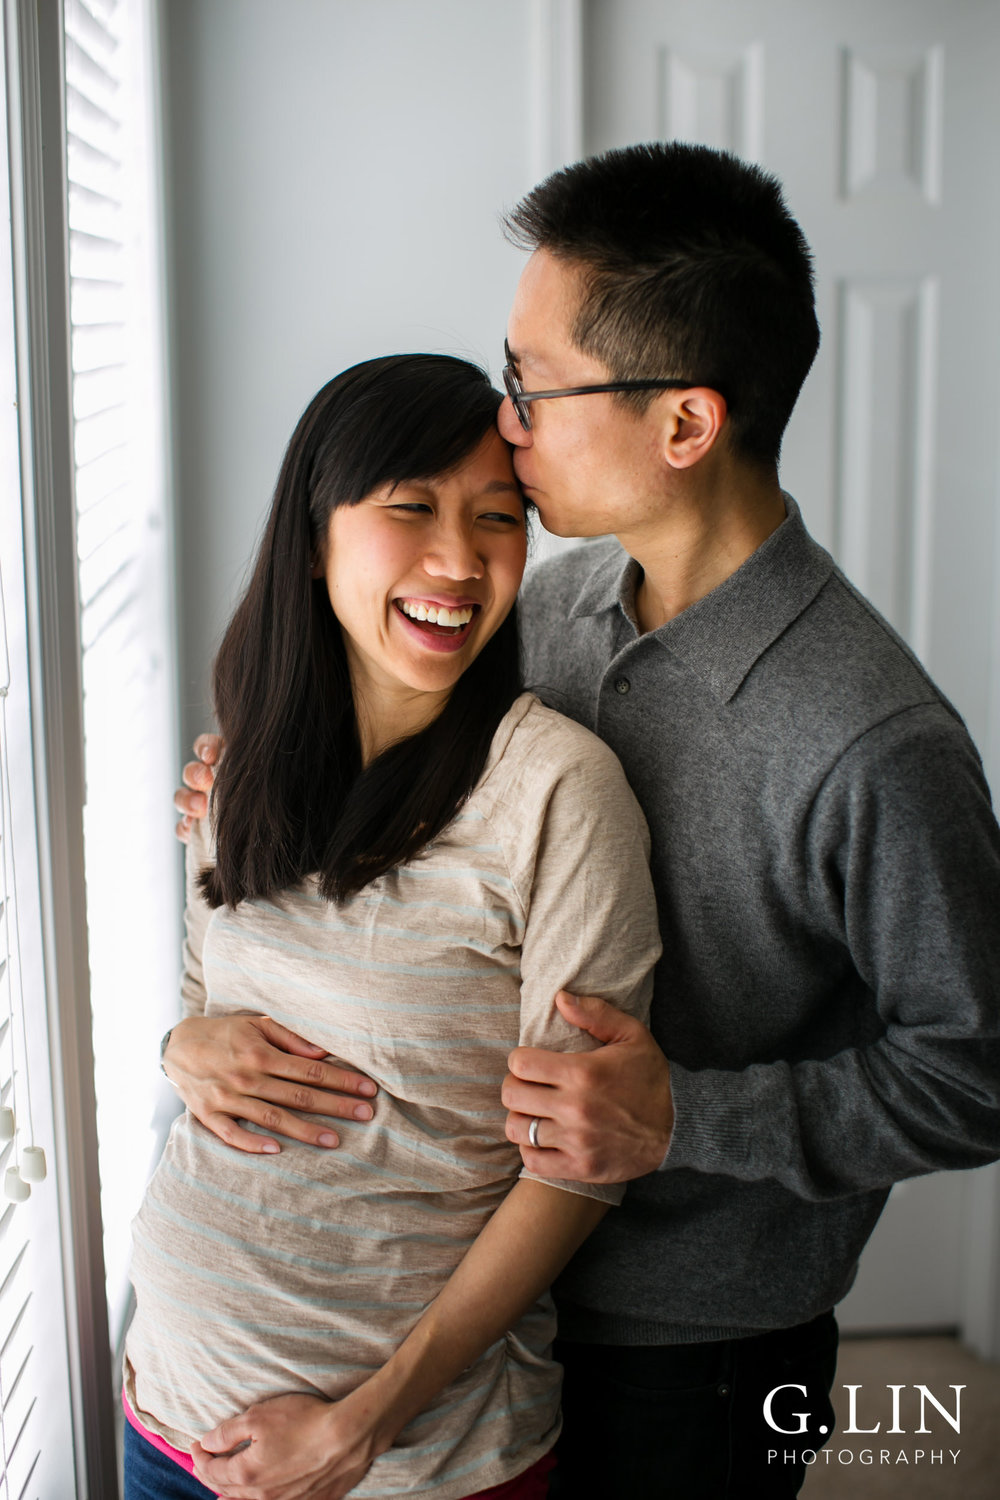 Durham Maternity Photography | G. Lin Photography | Couple standing by window and laughing